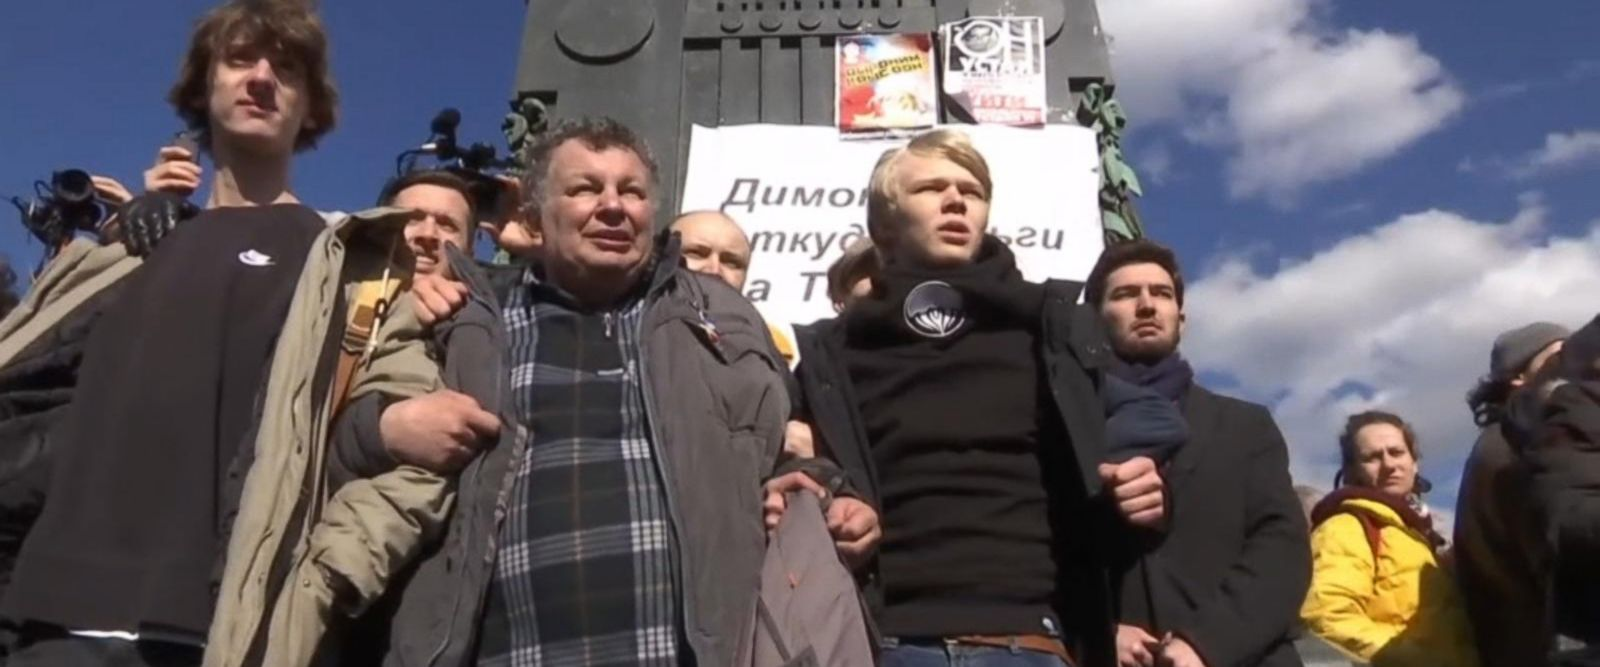 VIDEO: Thousands march in anti-corruption protests across Russia